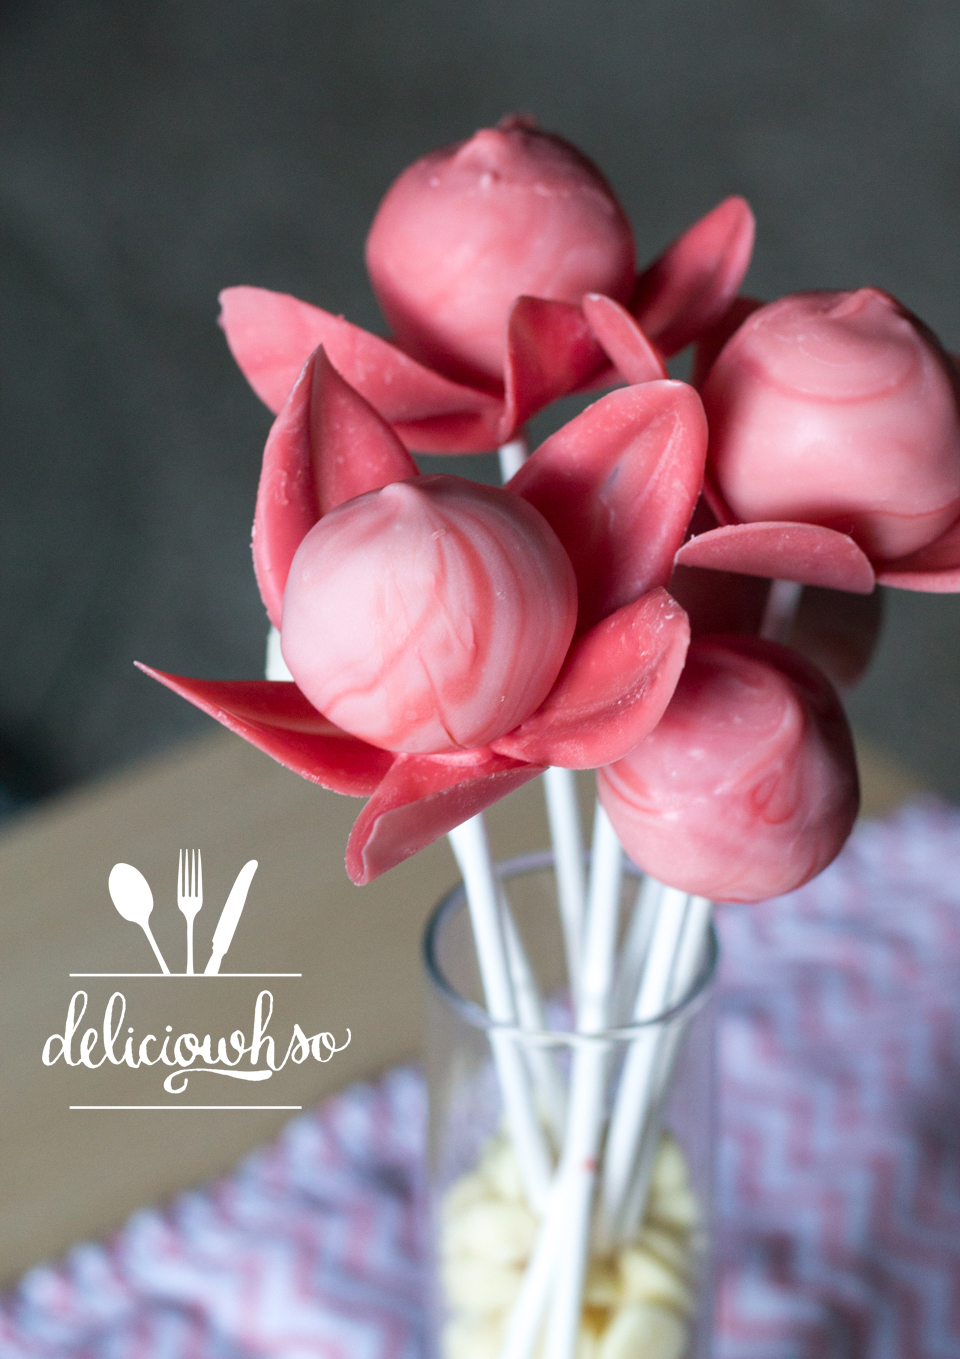 DELICI-OWH-SO: Cake Pop Bouquet